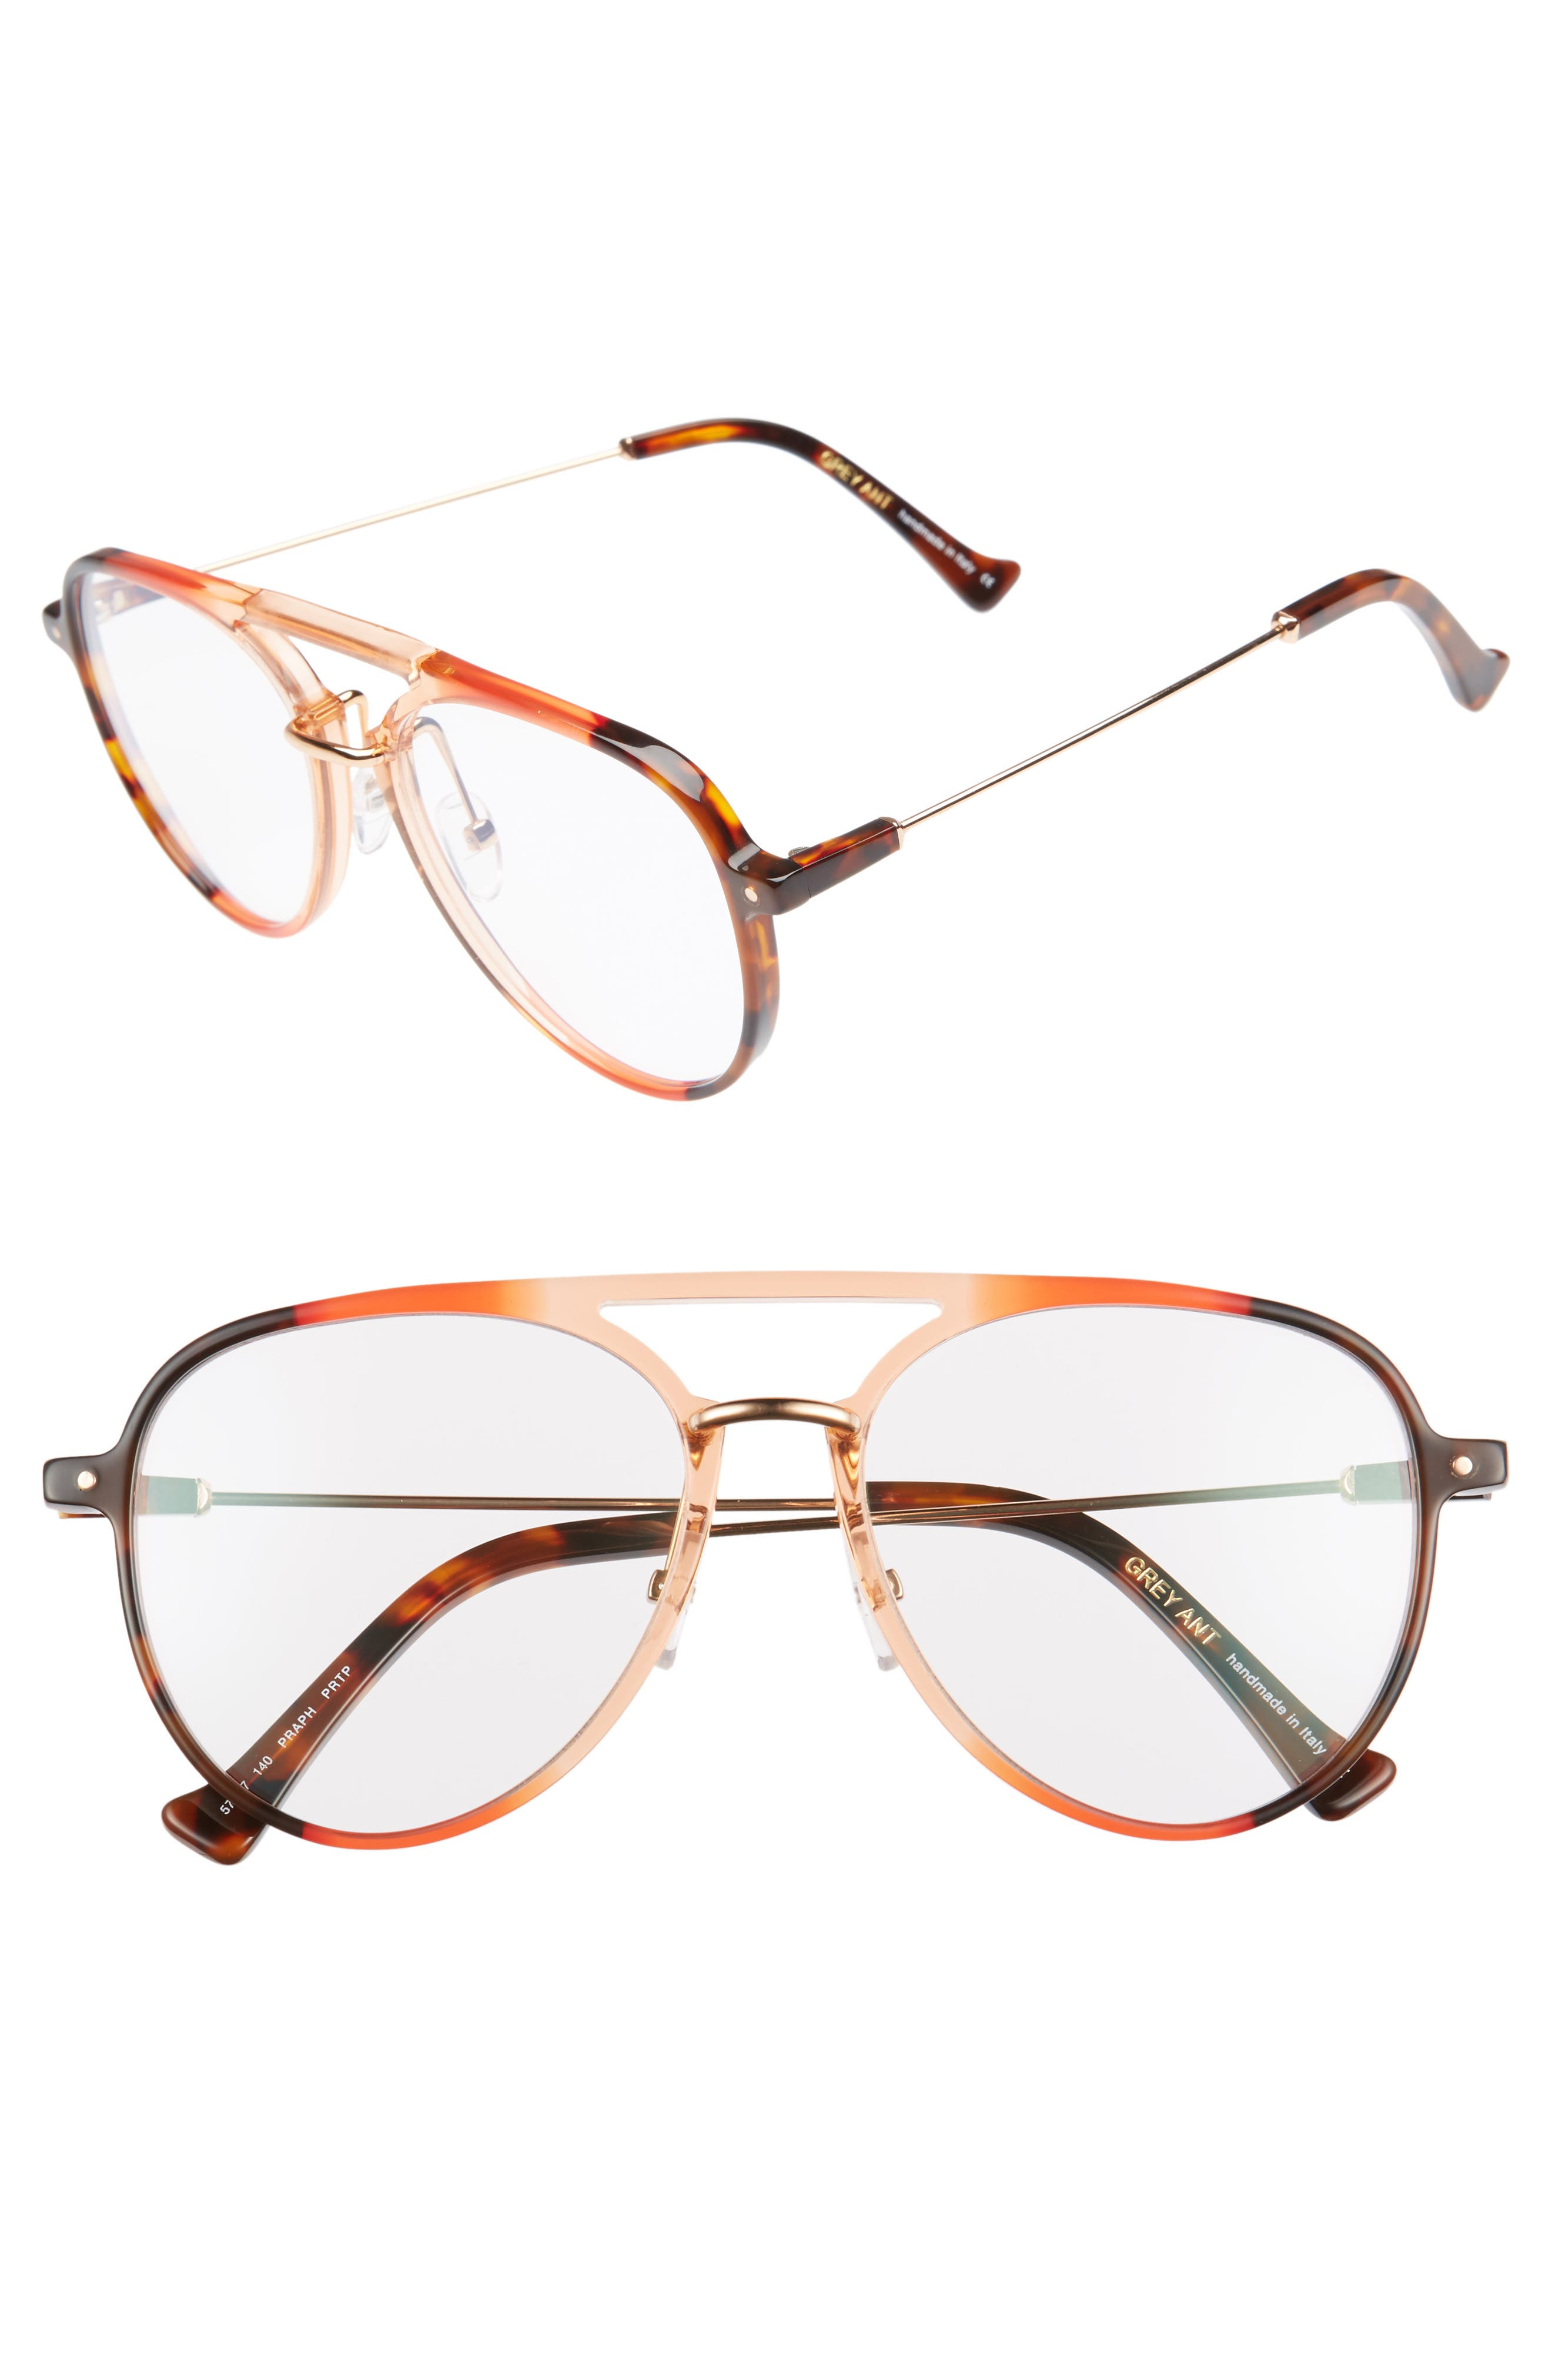 Praph 57mm Aviator Glasses,                             Main thumbnail 1, color,                             CLEAR/AMBER TORT HARDWARE